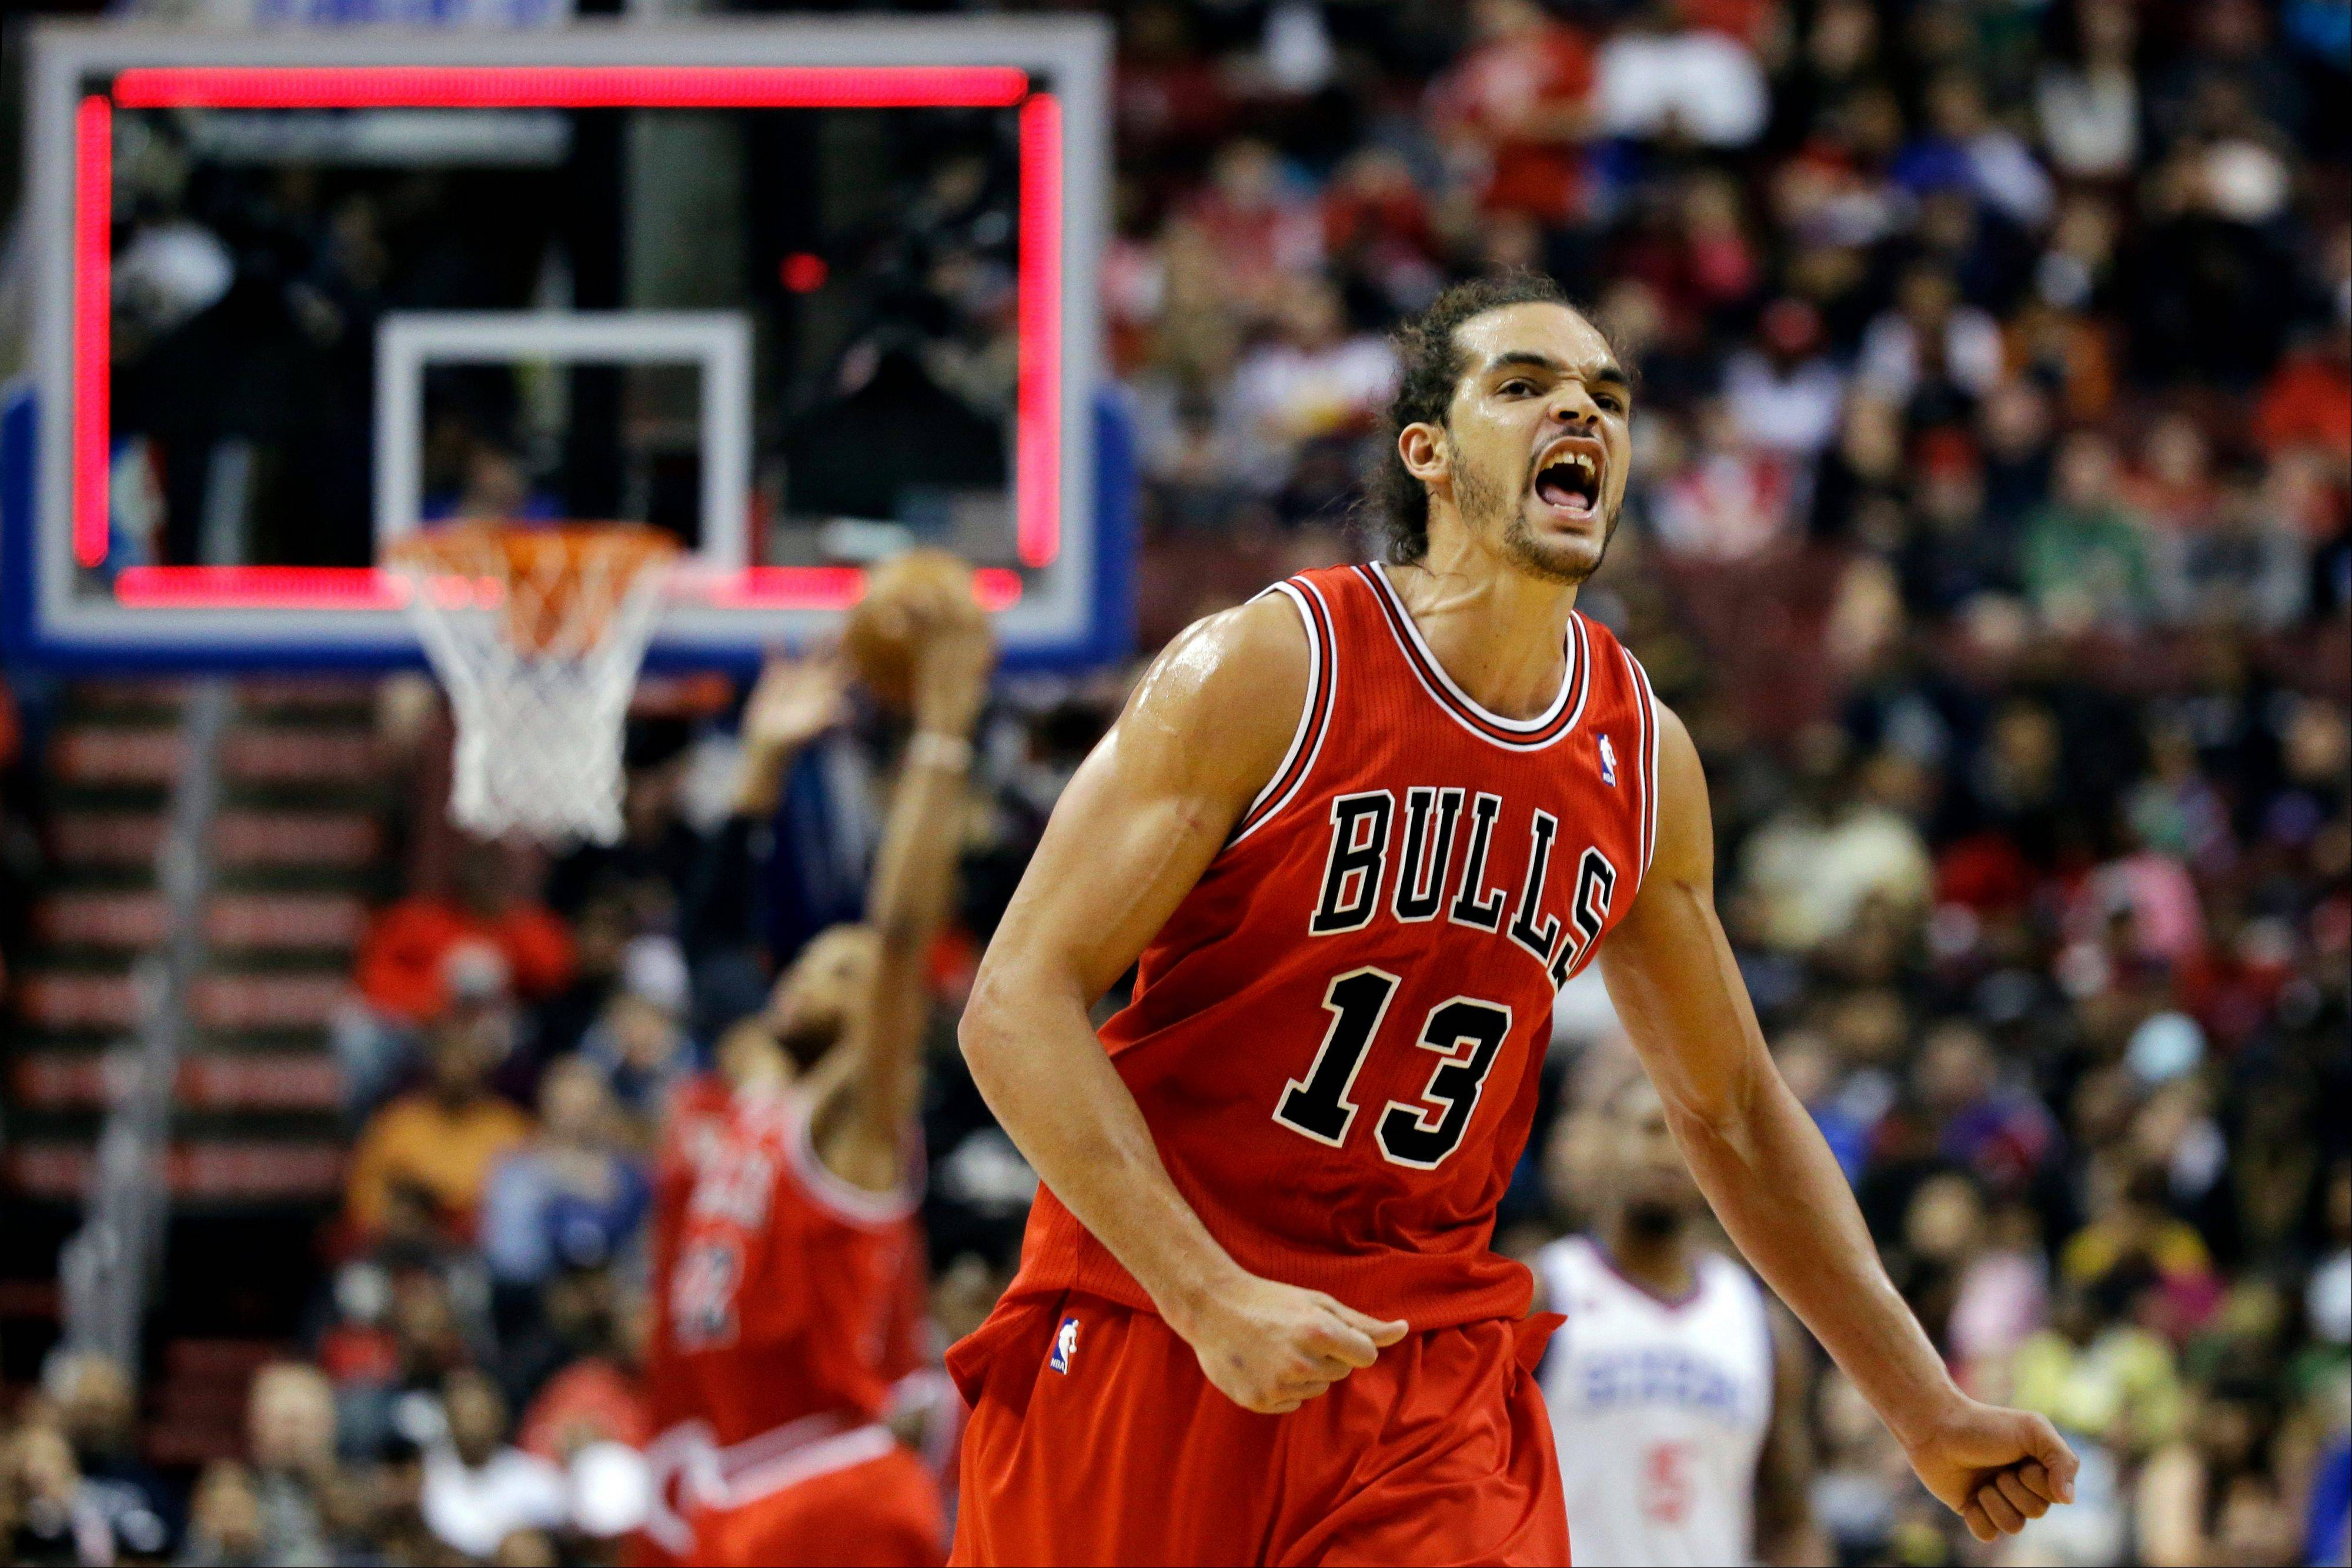 Chicago Bulls' Joakim Noah reacts after Philadelphia 76ers' Spencer Hawes failed to score at the end of the first quarter of an NBA basketball game, Wednesday, Dec. 12, 2012, in Philadelphia.